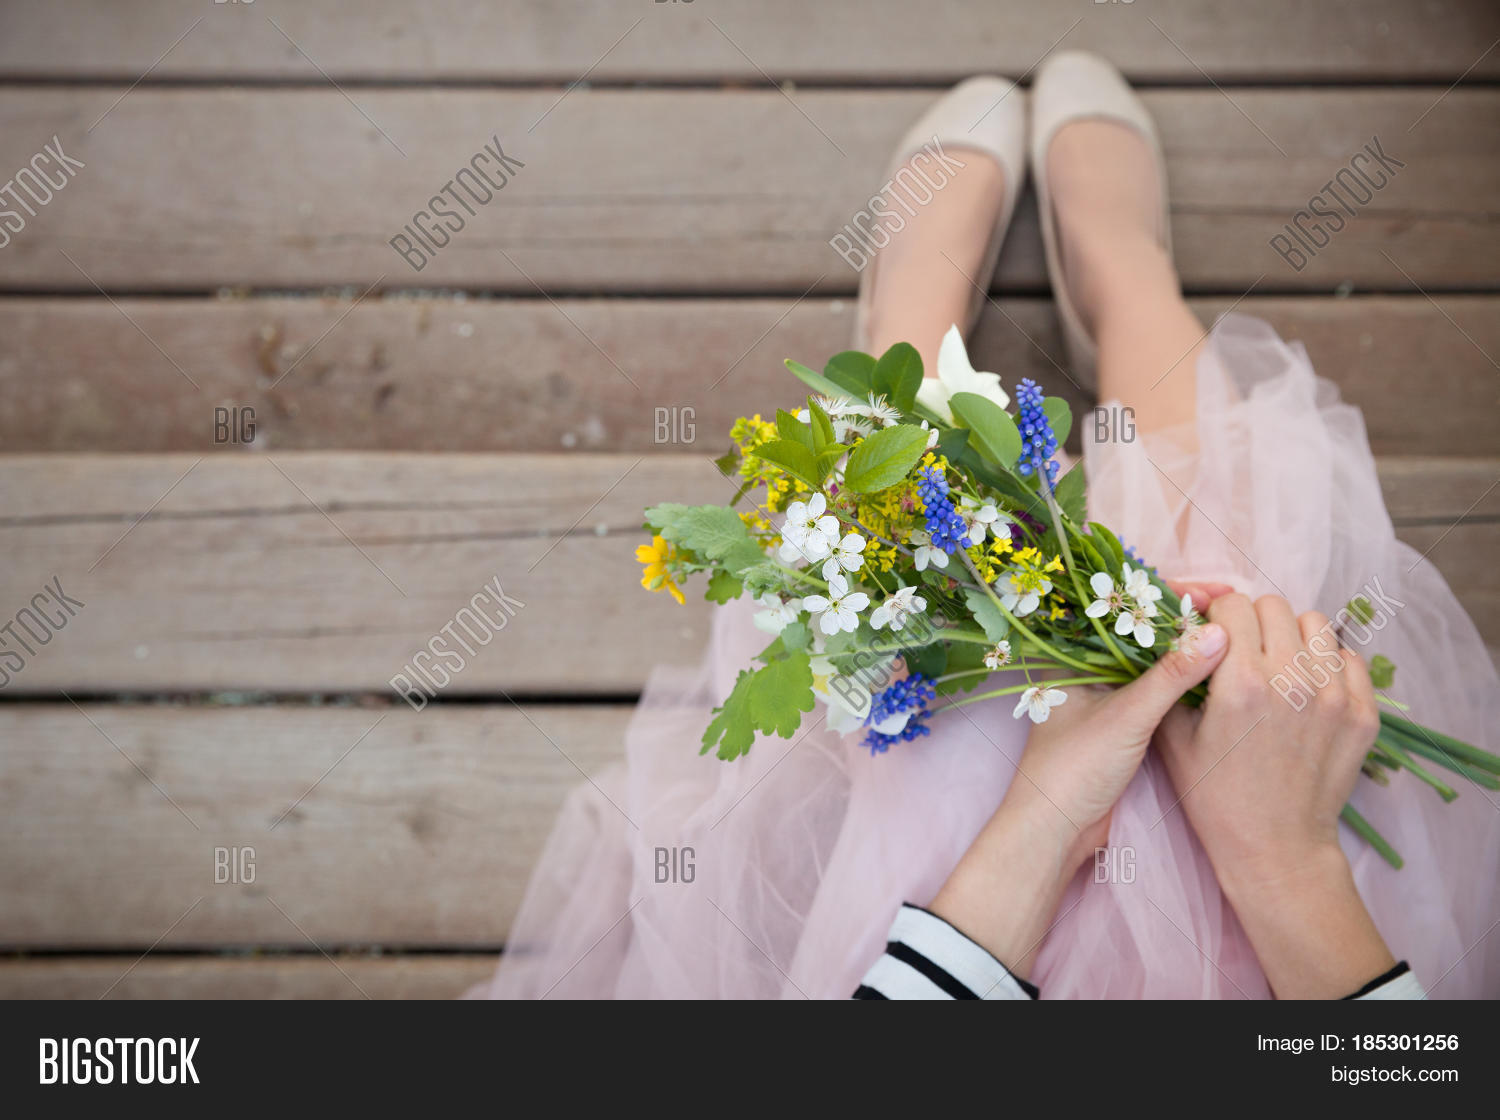 Top View On Woman Image Photo Free Trial Bigstock